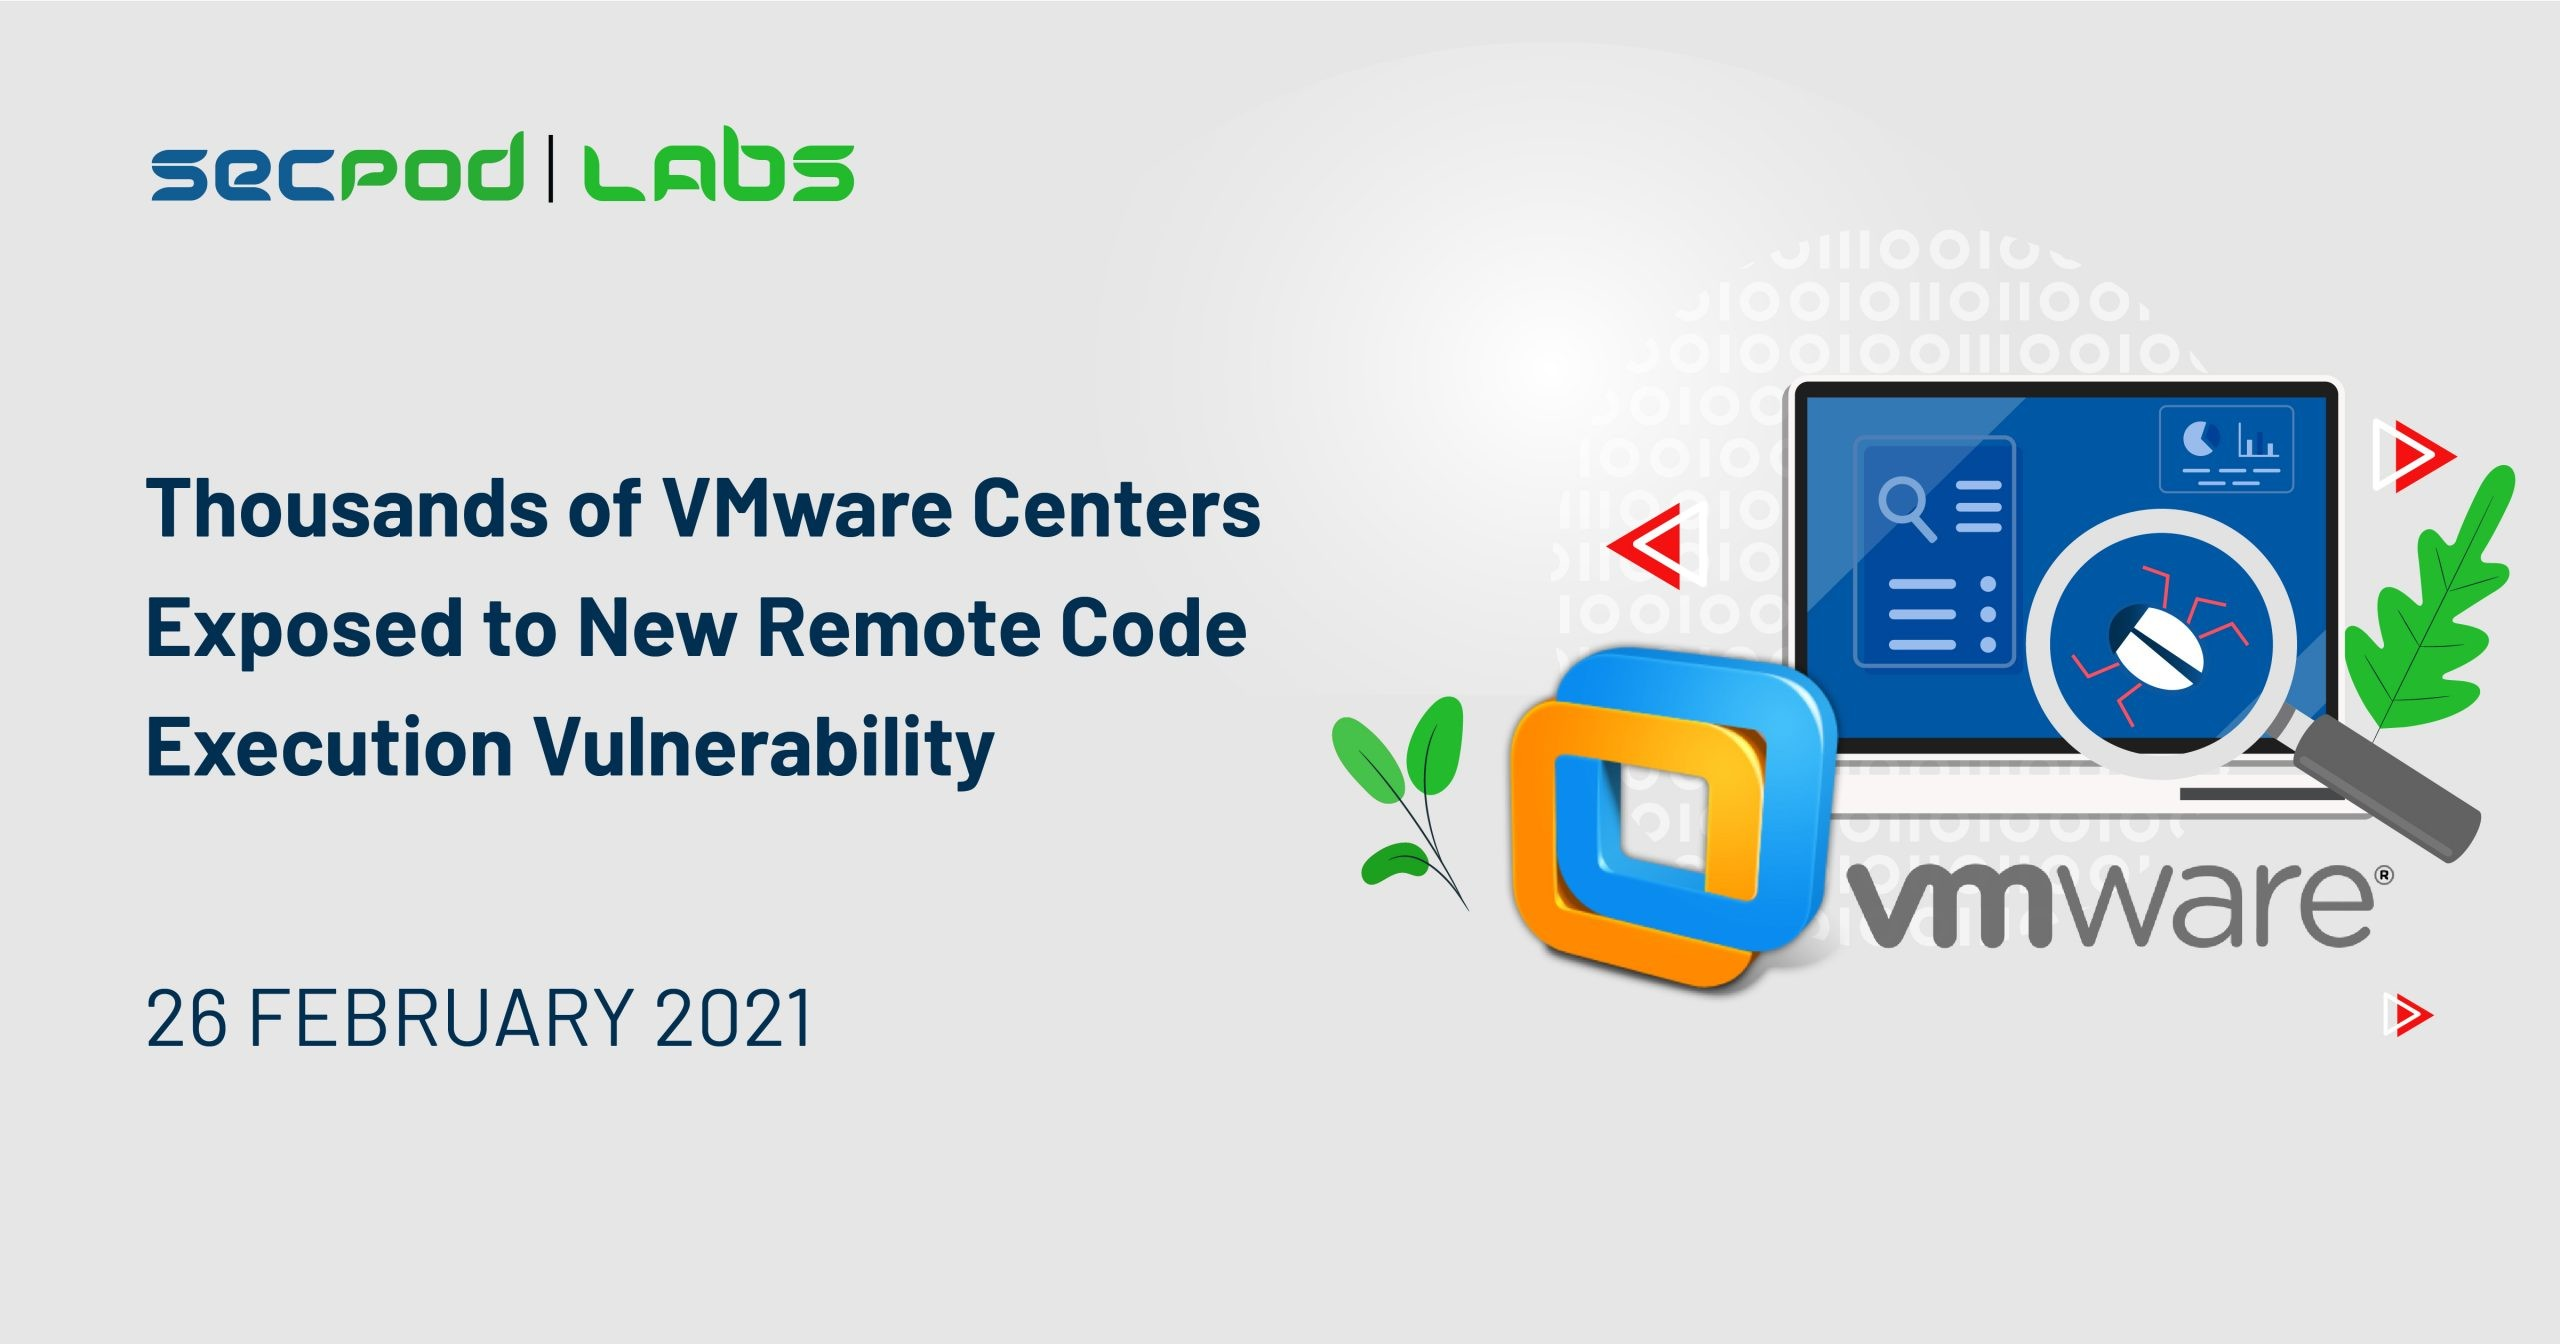 Thousands of VMware Centers Exposed to New Remote Code Execution Vulnerability